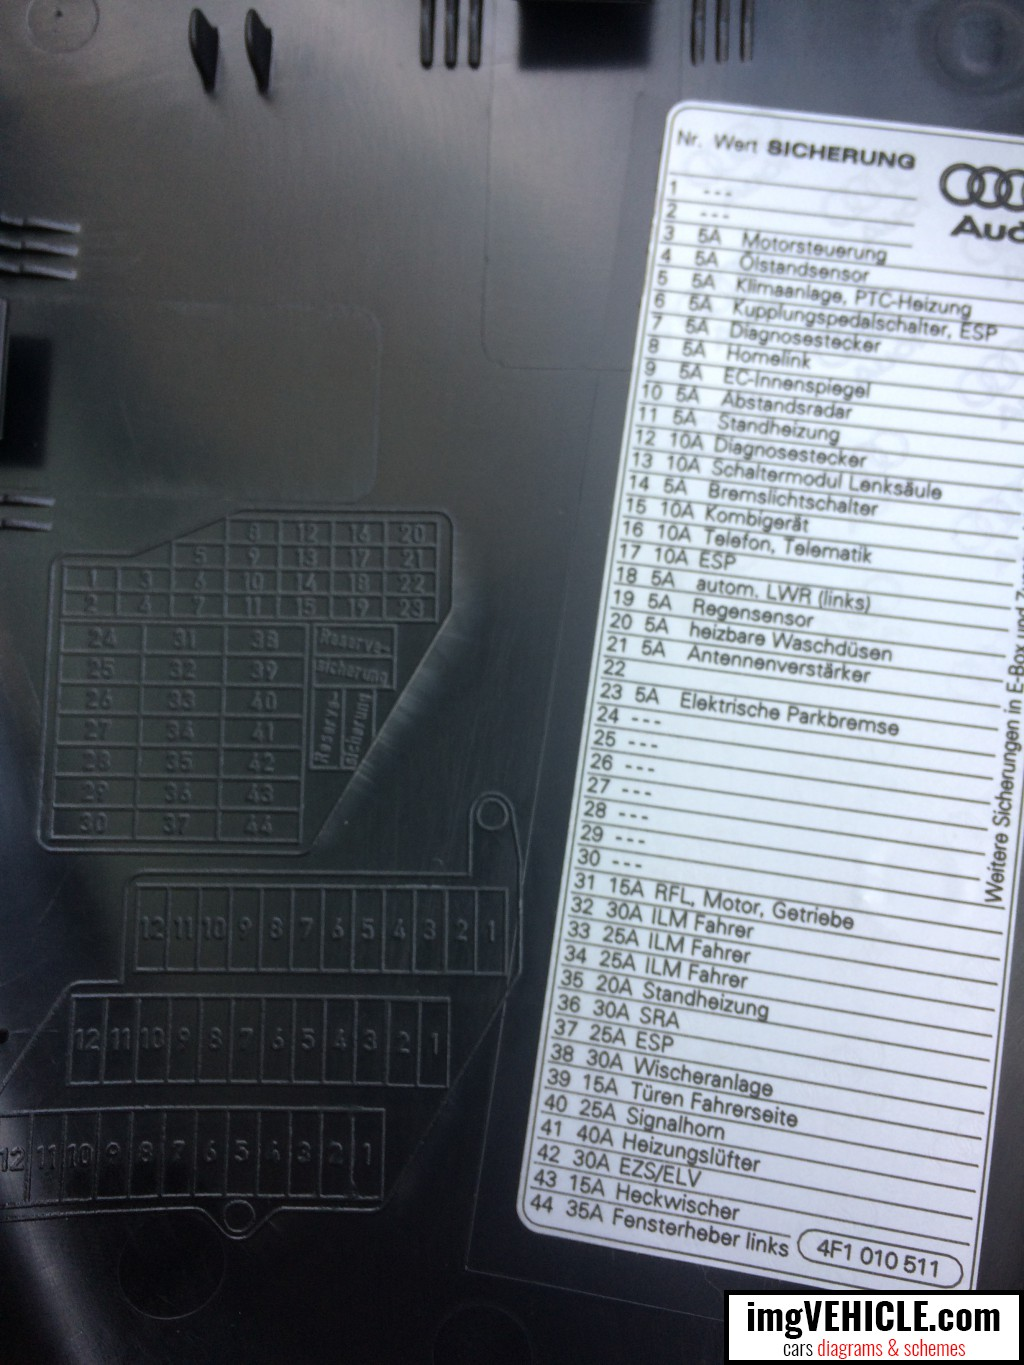 Fuse Box On A Audi A4 2002 : Audi fuse box diagram wiring for free